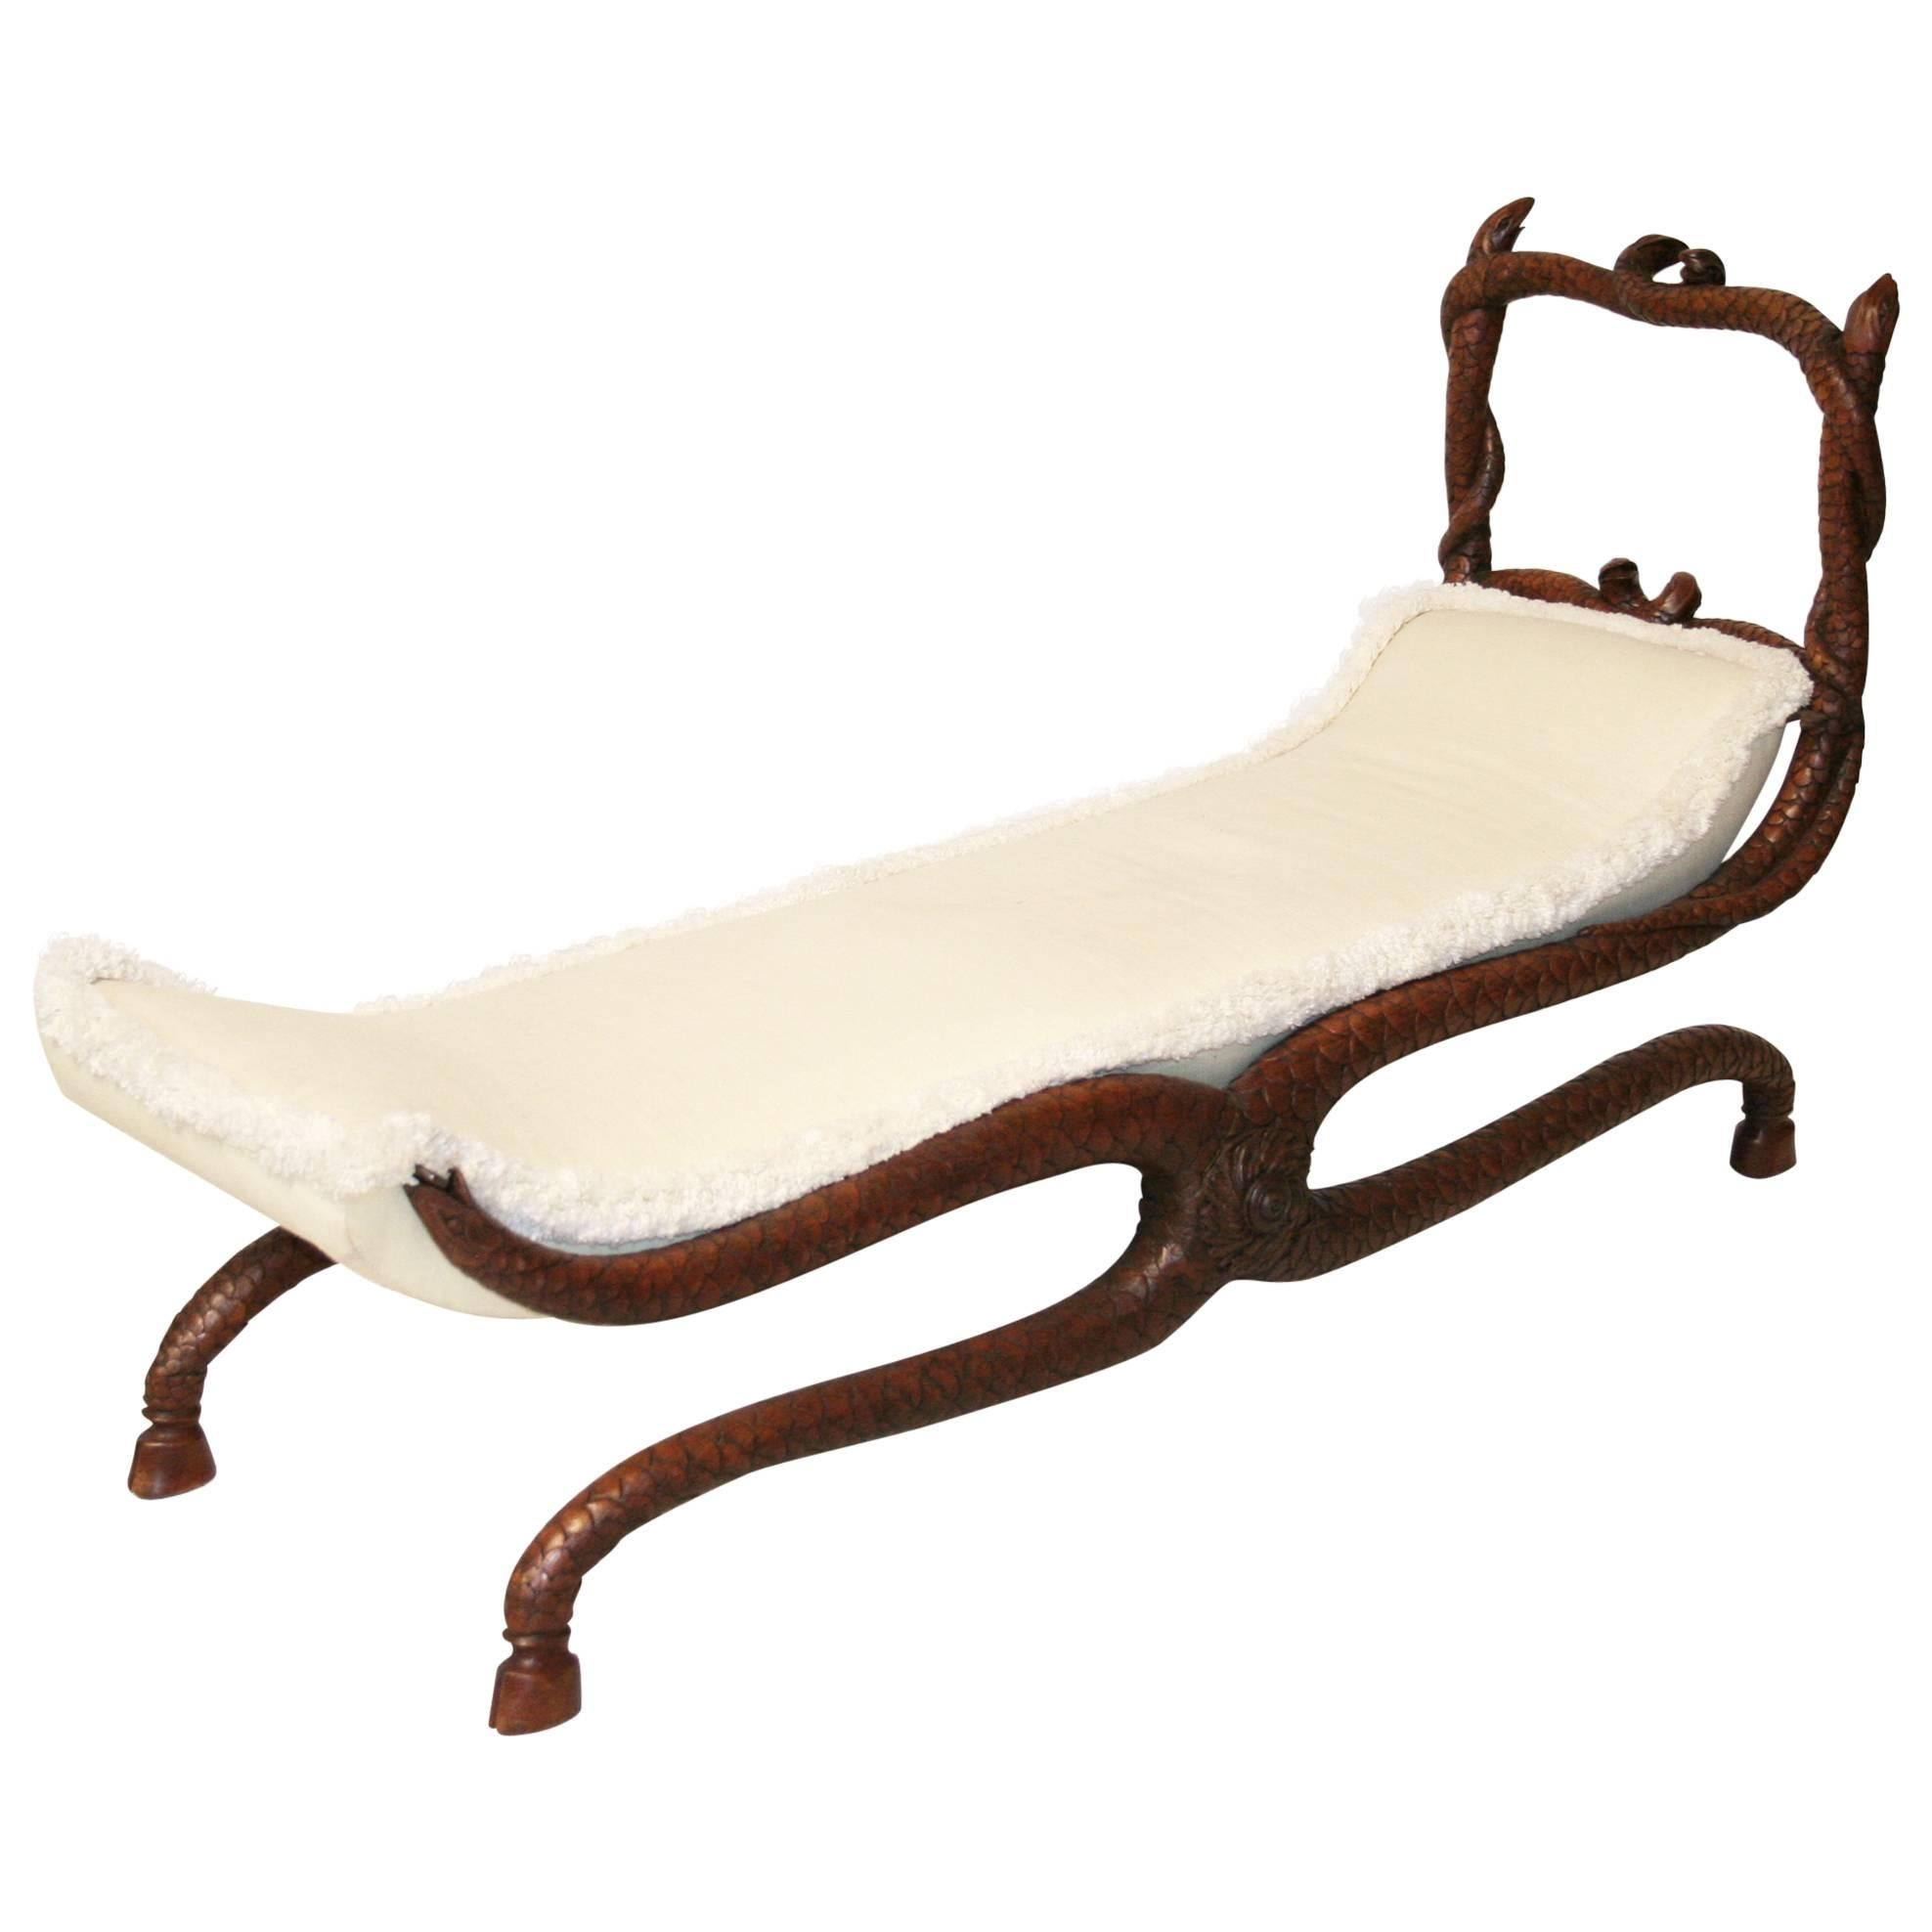 Fantastic 19th Century Serpent Carved Walnut Daybed/Bench